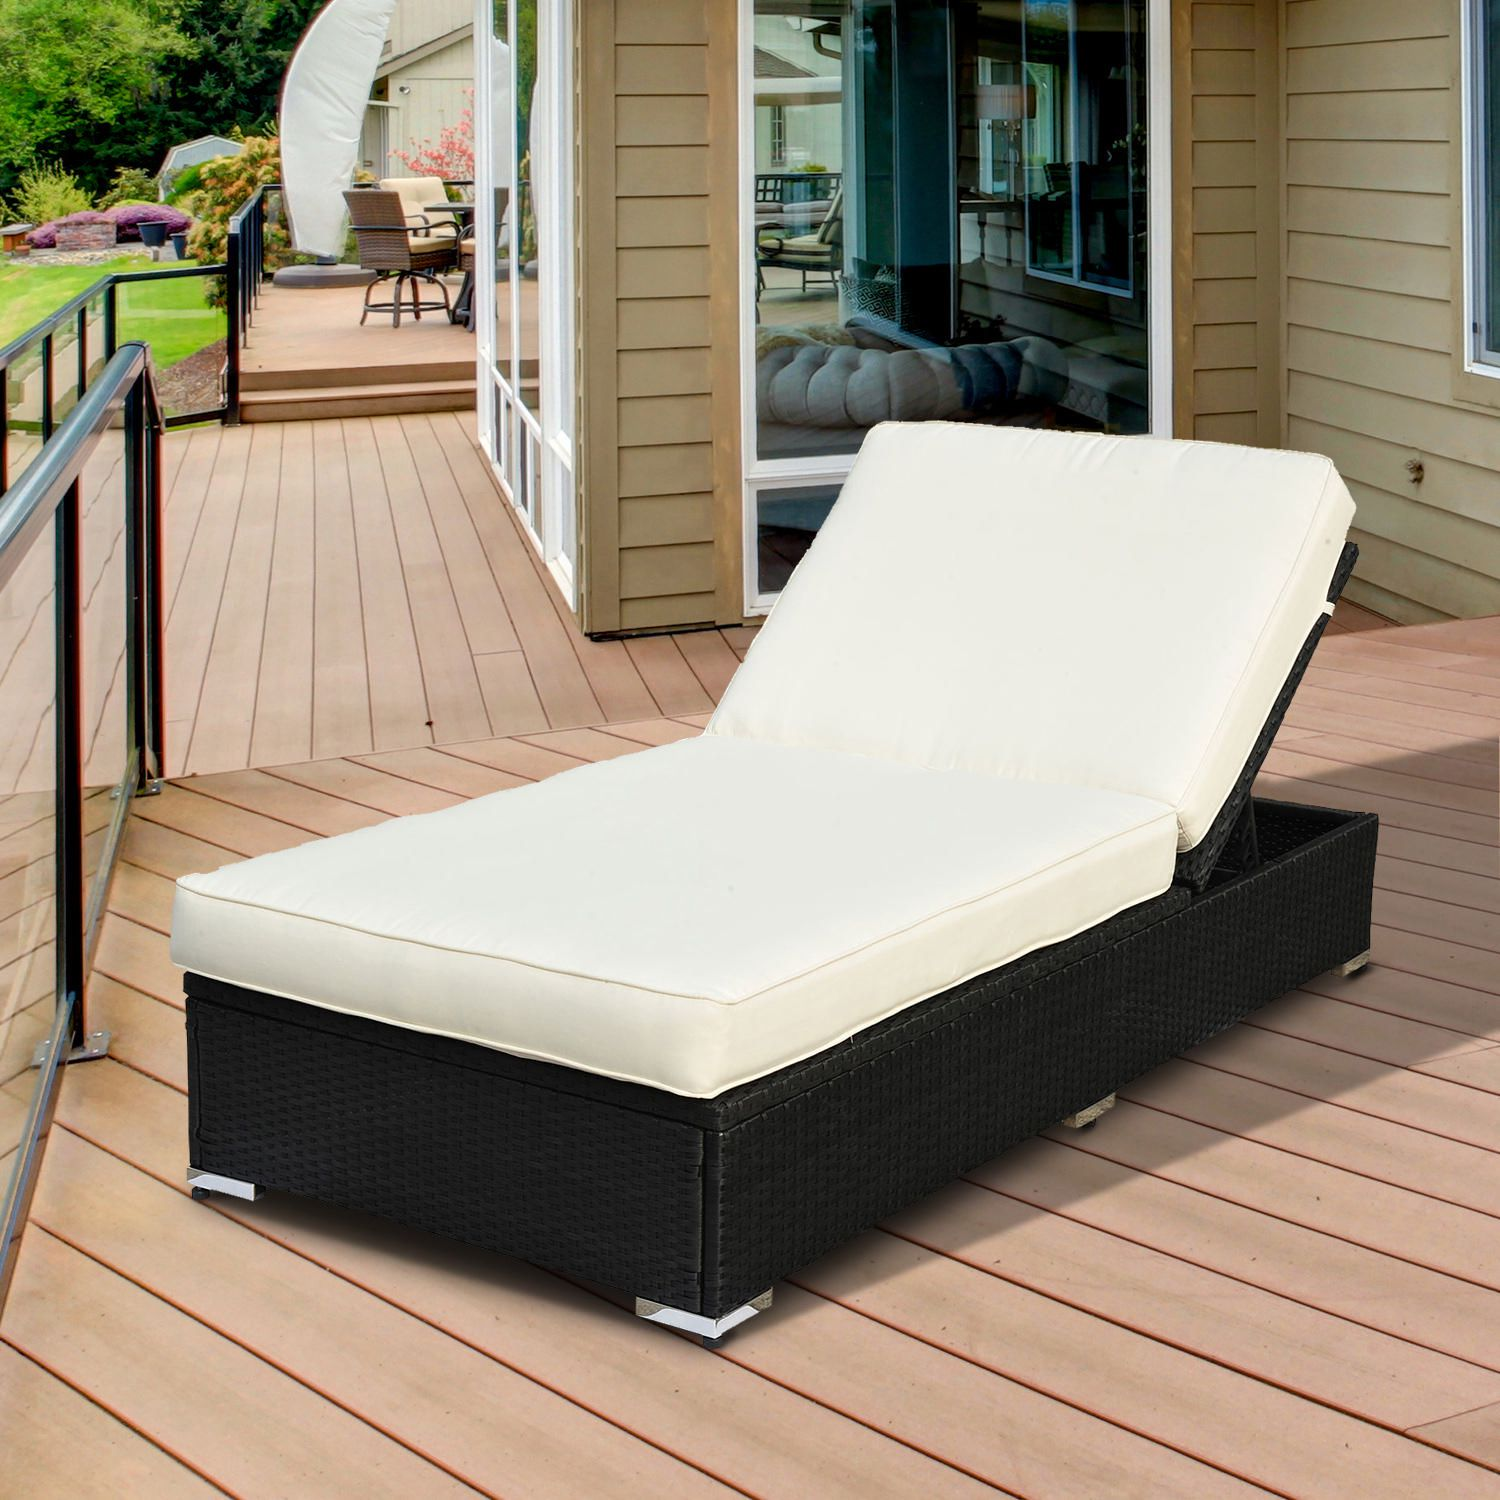 Outsunny Patio Rocking Sun Chaise Lounge Outdoor Day Bed Chair with Pillow and Stand